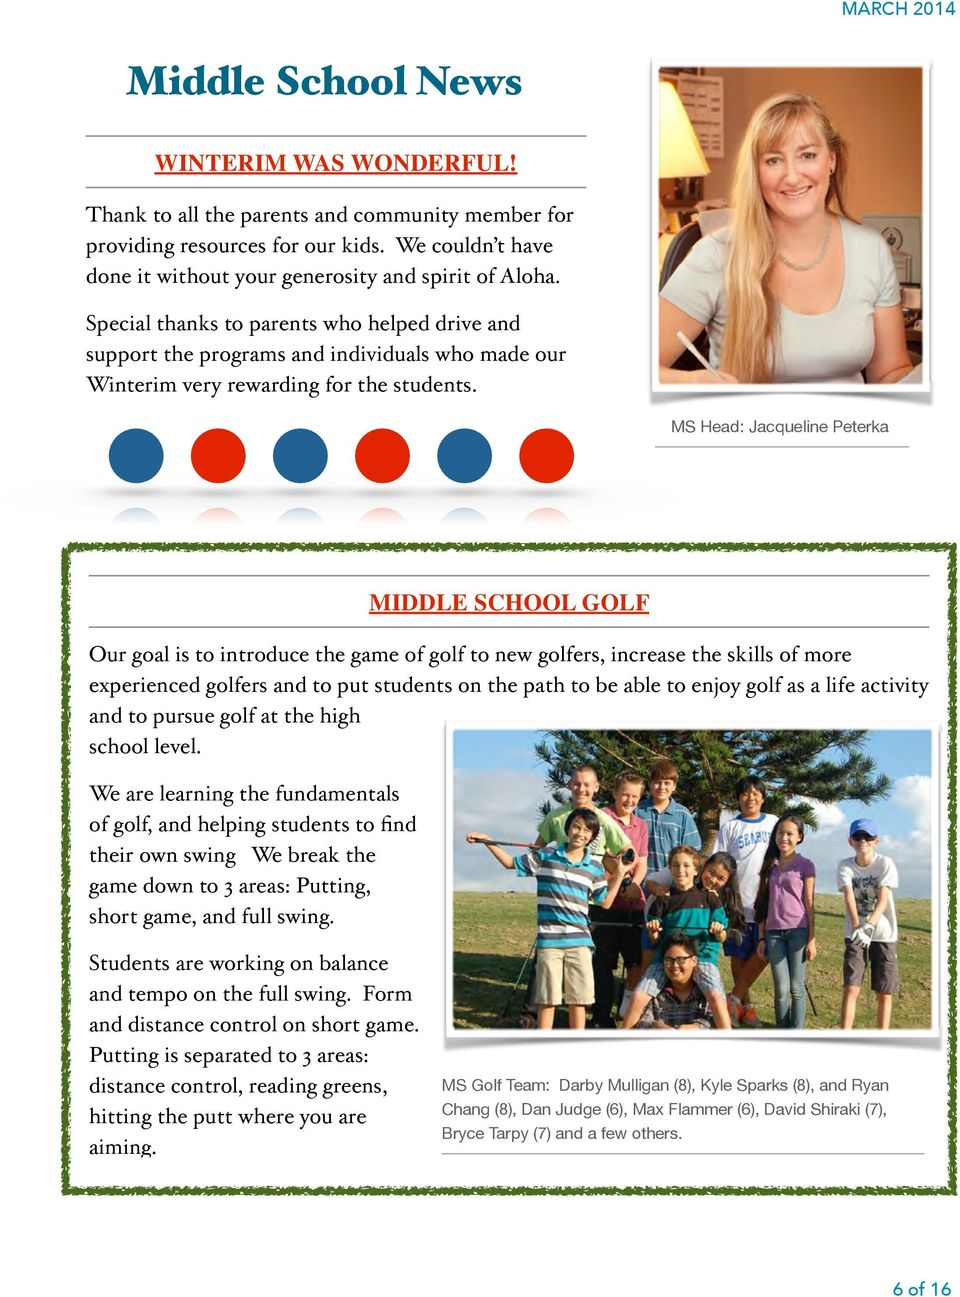 MS Head: Jacqueline Peterka MIDDLE SCHOOL GOLF Our goal is to introduce the game of golf to new golfers, increase the skills of more experienced golfers and to put students on the path to be able to